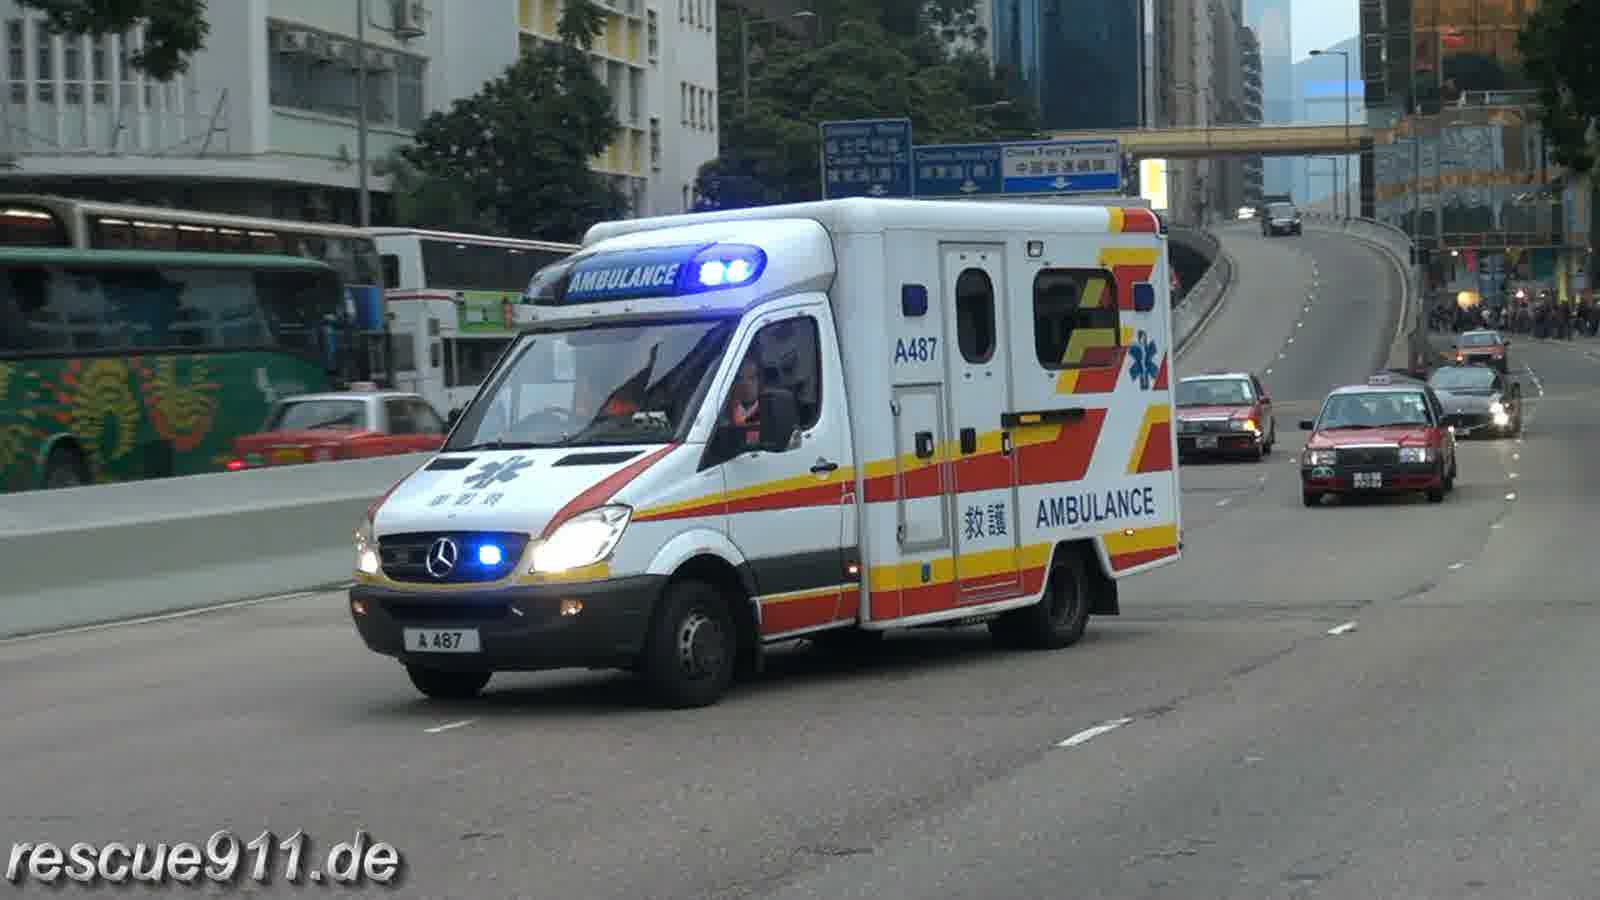 Ambulance 471 + 487 HKFSD Tsim Sha Tsui Fire Station (collection) (stream)